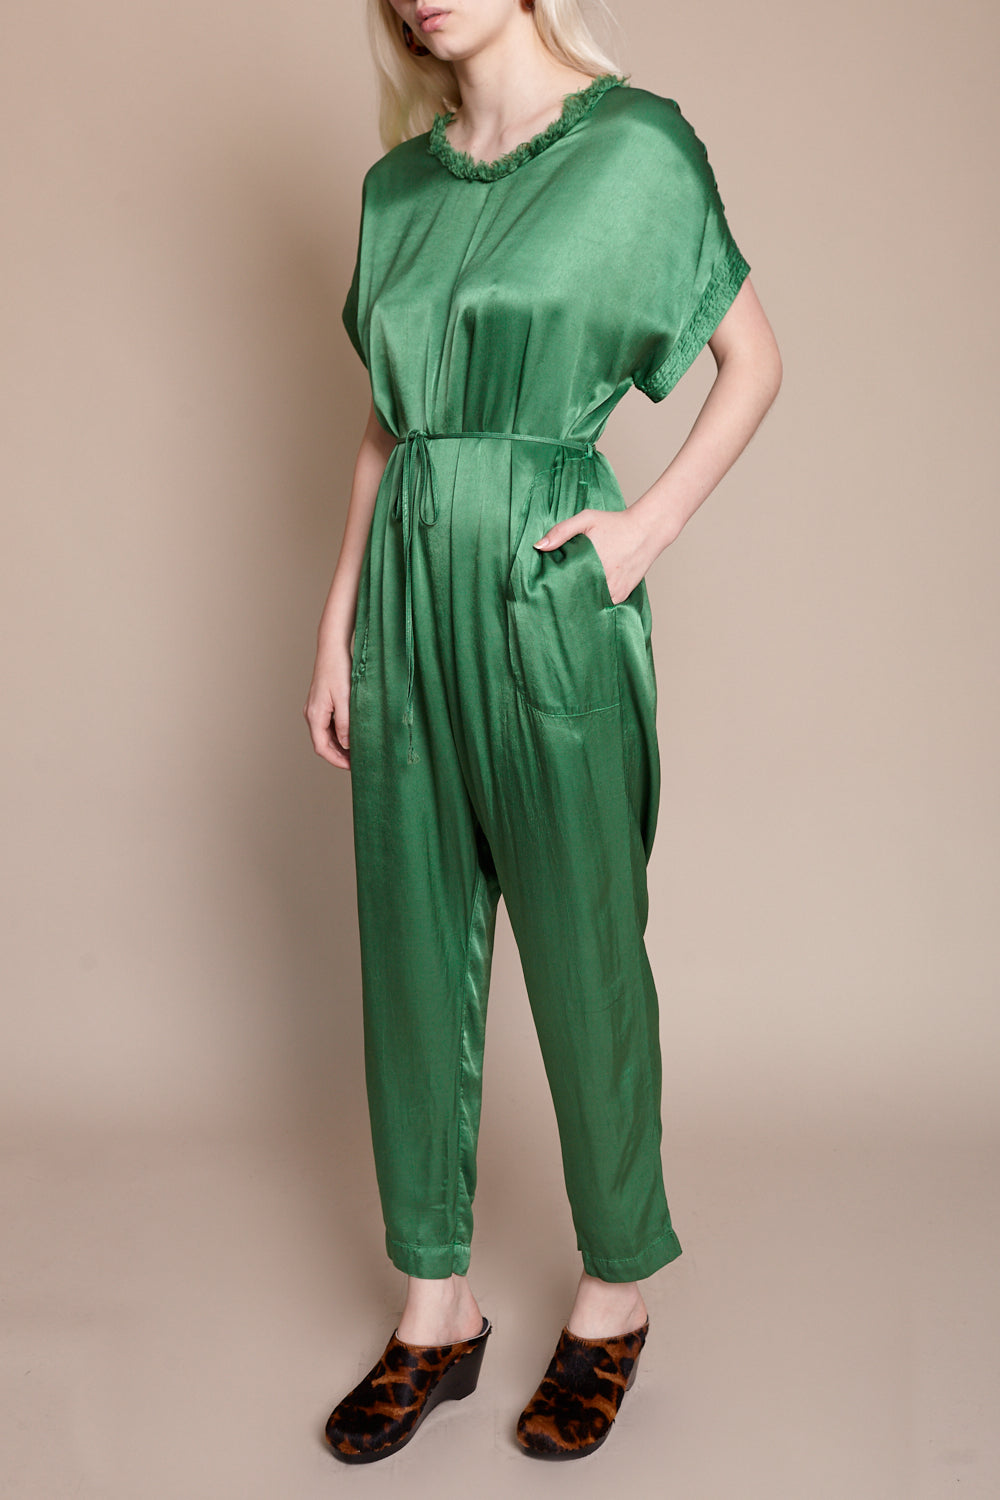 Raquel Allegra Jumper in Jade - Vert & Vogue